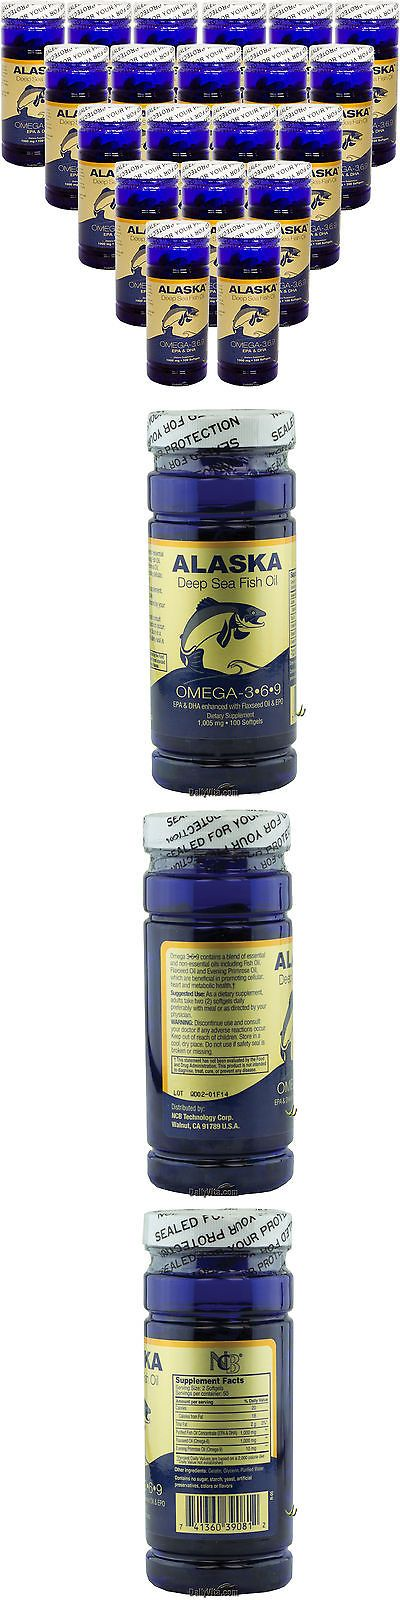 wholesale Other Whlsl Health and Beauty: 20 X Alaska Deep Sea Omega-3-6-9 Fish Oil Epa Dha 100Sg, Fresh, Made In Usa -> BUY IT NOW ONLY: $73.95 on eBay!